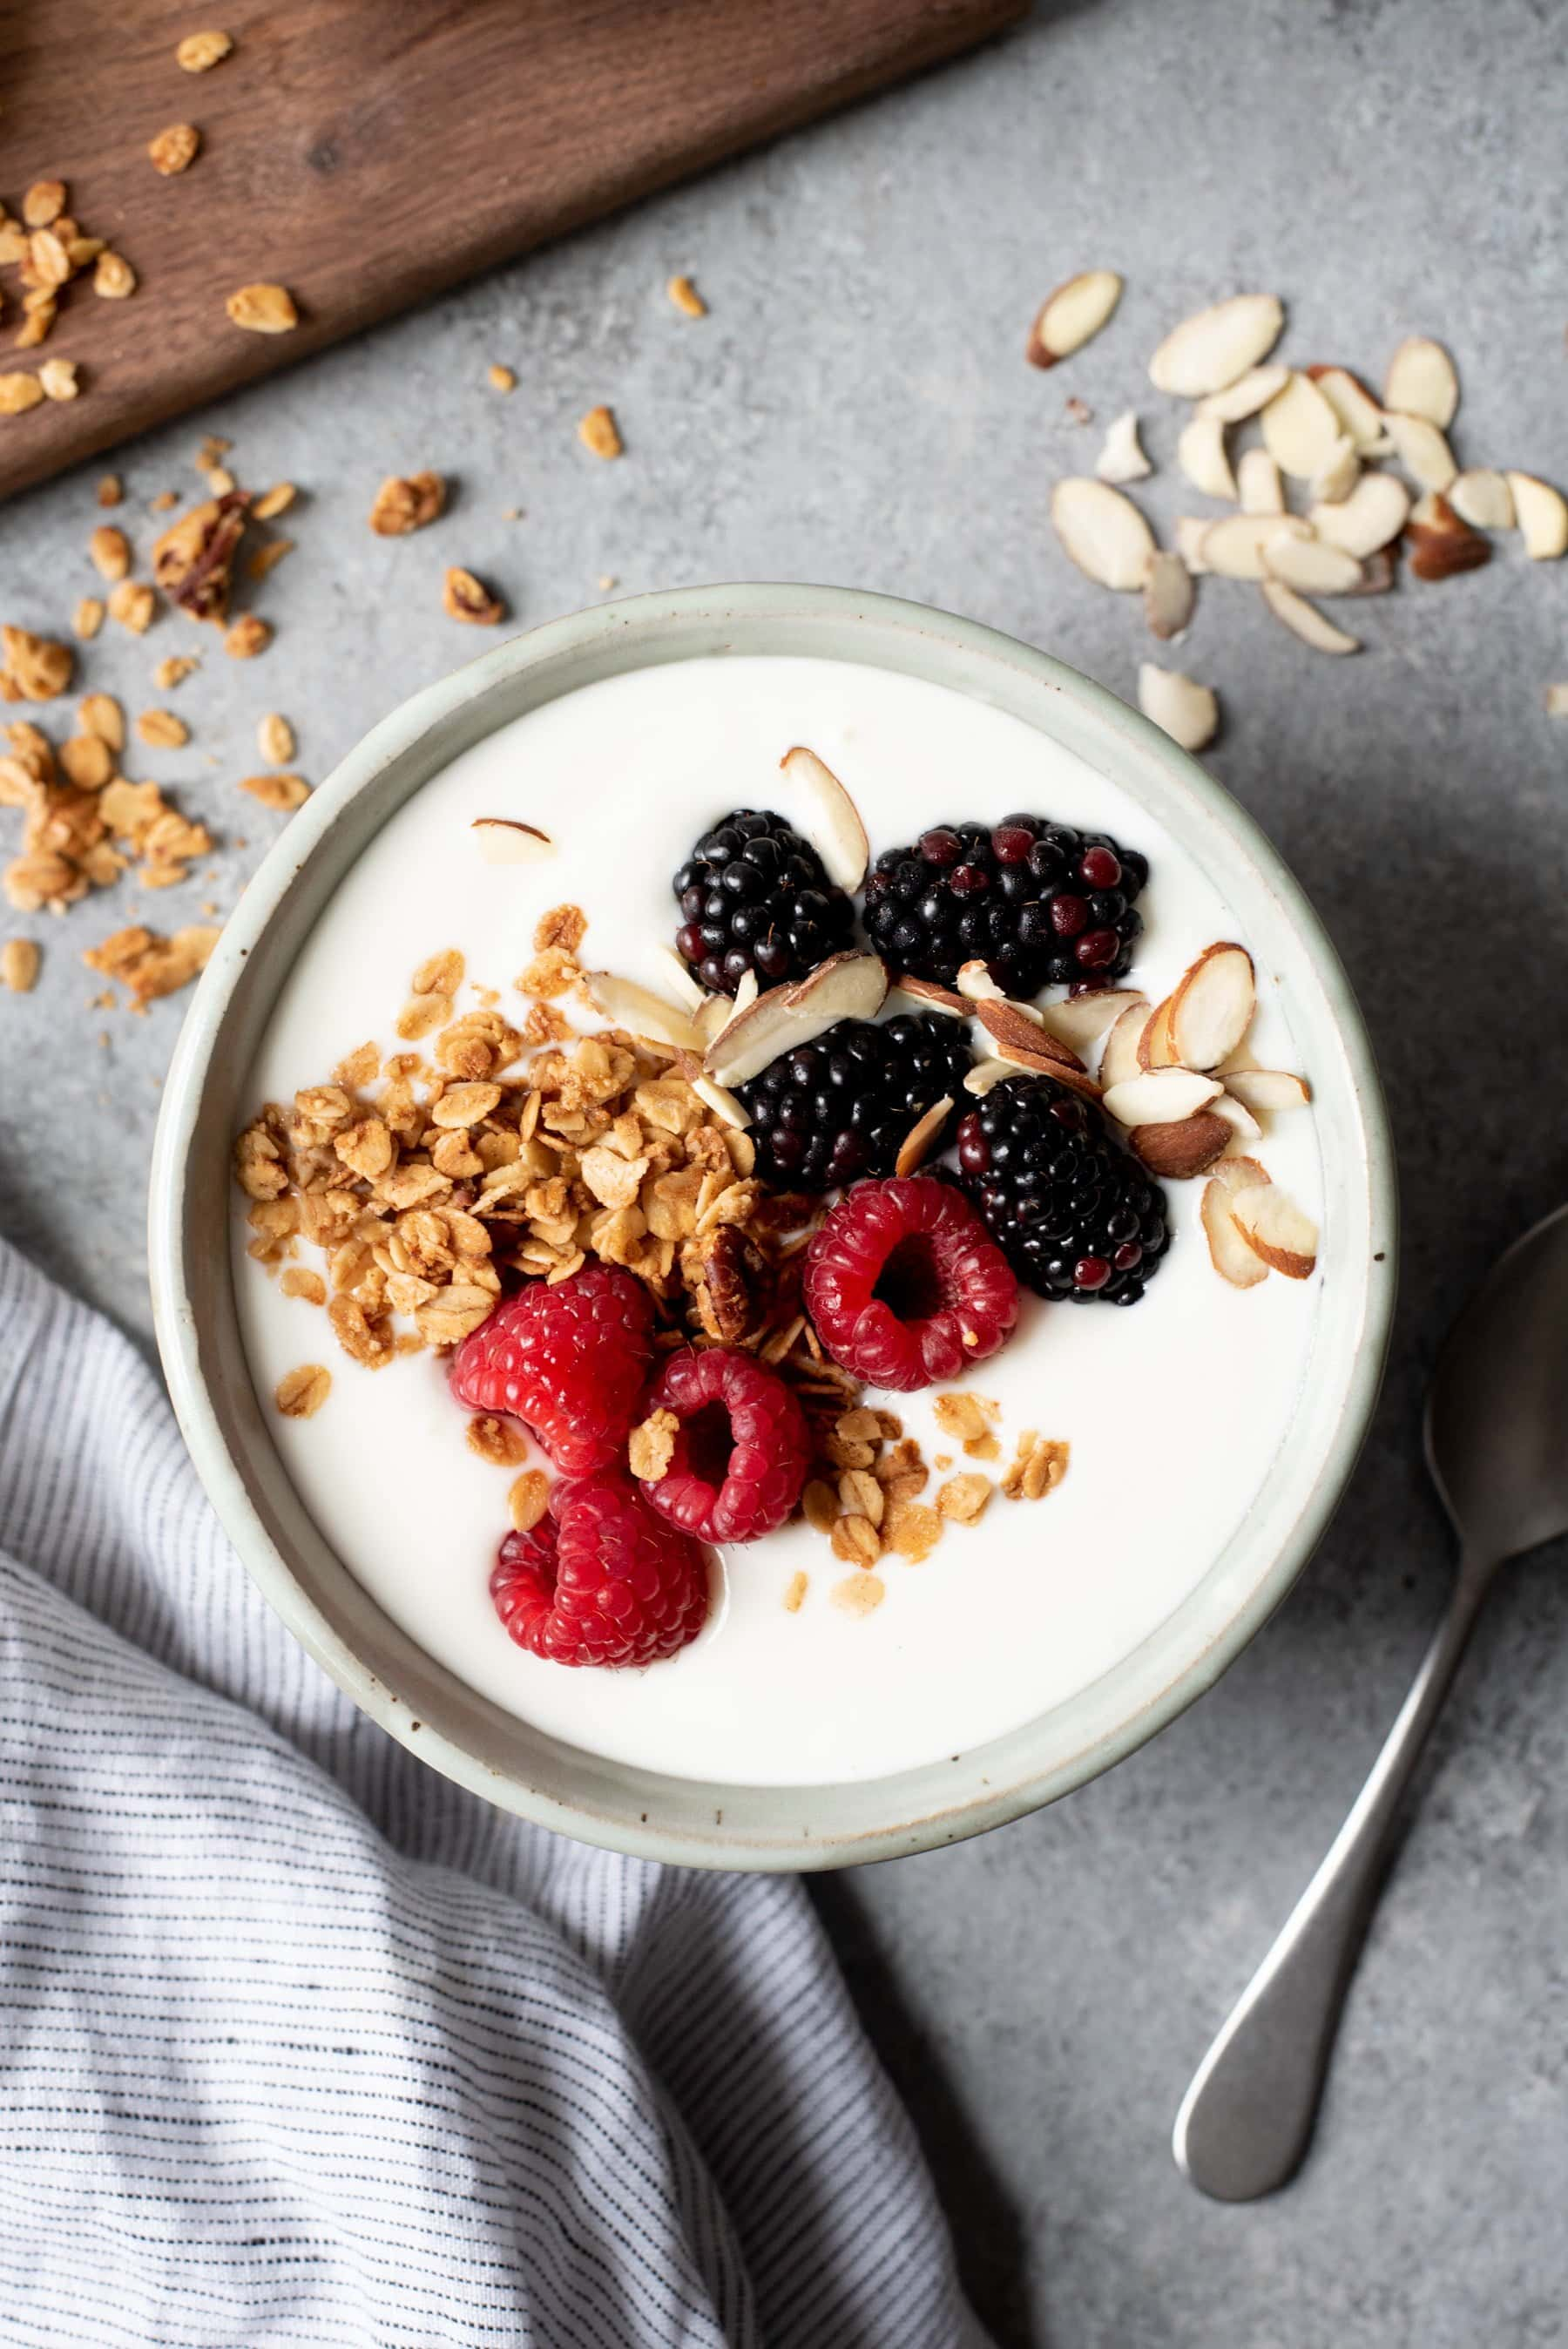 Simple recipes for making yoghurt in a yoghurt maker, a slow cooker, a thermos and a jar at home: yogurts made from milk, sourdoughs and sour cream, sweet yogurts with berries and fruits 9